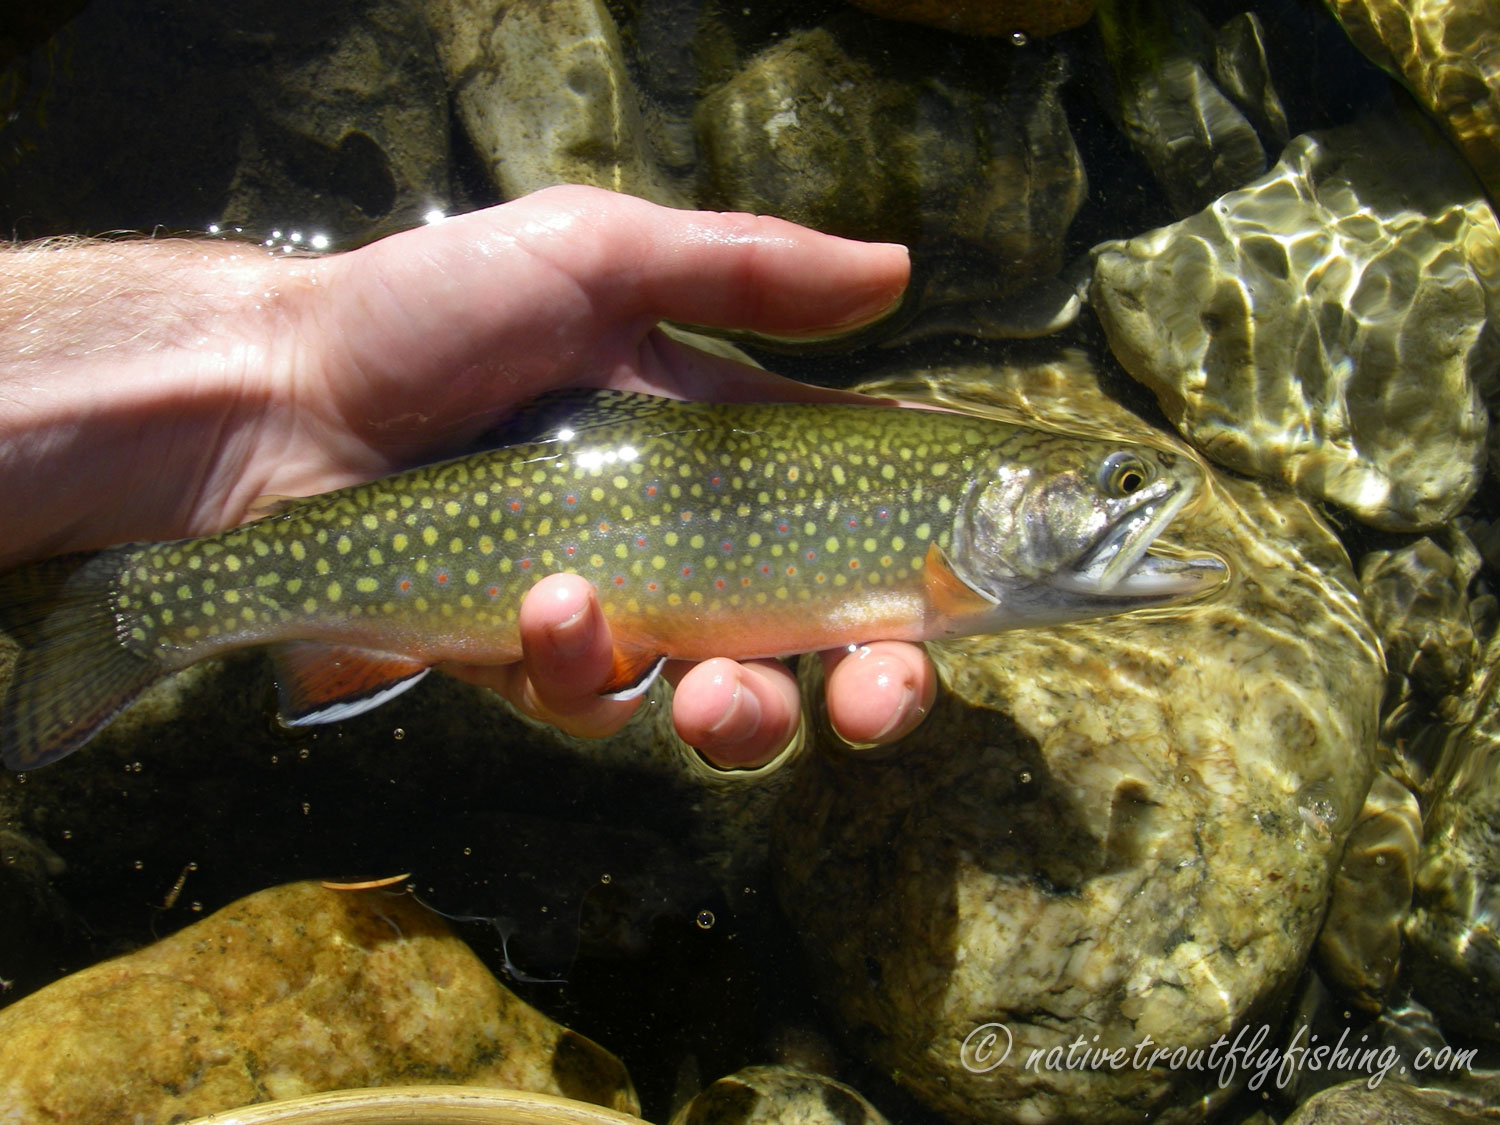 Native trout fly fishing brook trout for Trout fishing spots near me